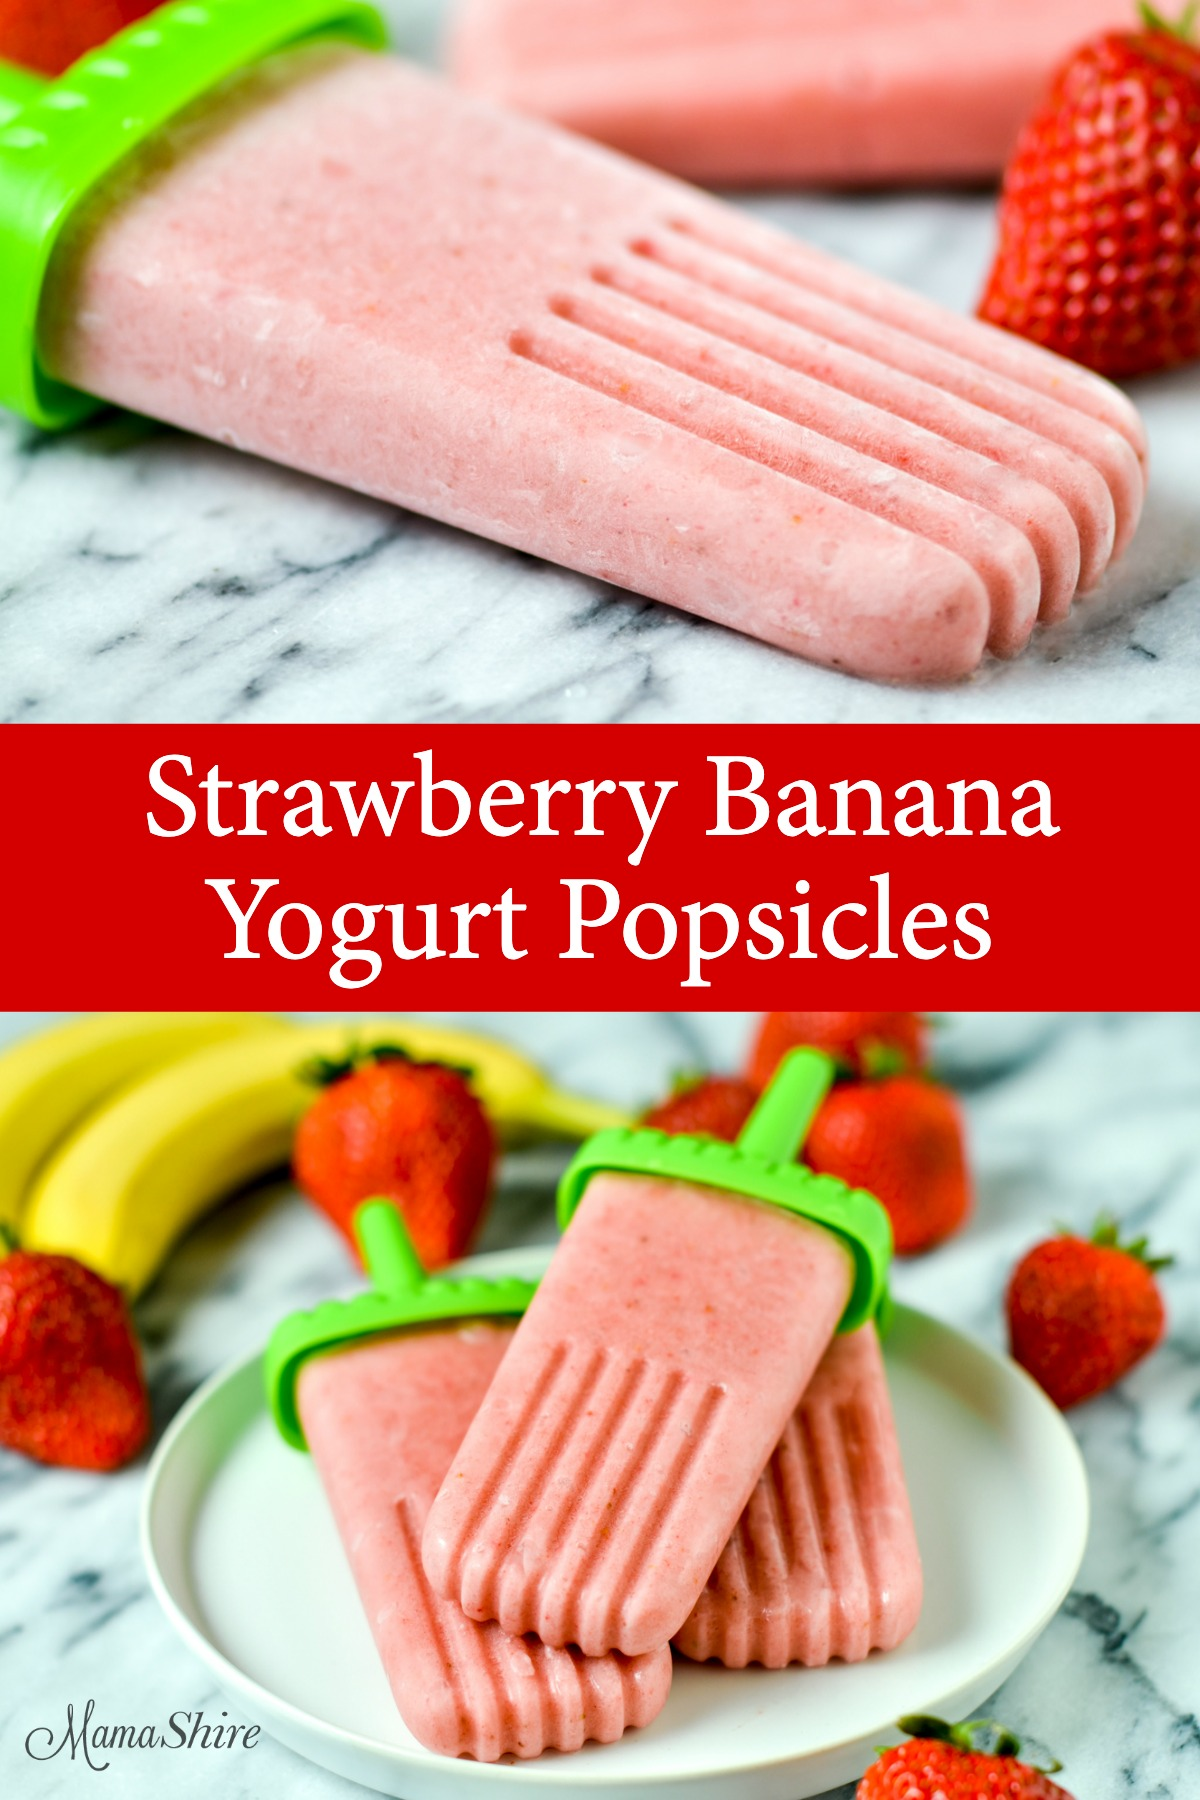 Delicious popsicles with strawberries and bananas in the background. These were made with a strawberry banana yogurt popsicle recipe thats dairy-free.